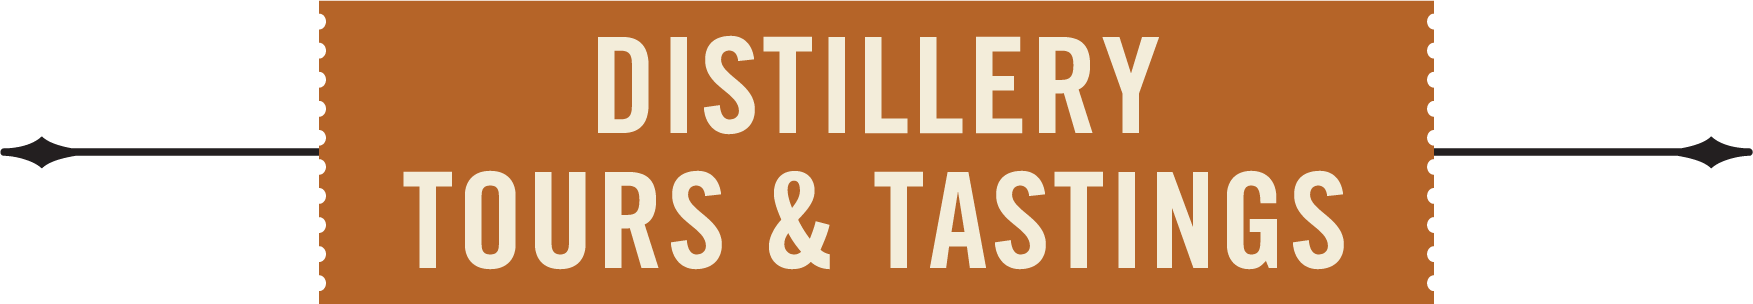 Distillery Tours & Tastings in Nashville, Tennessee